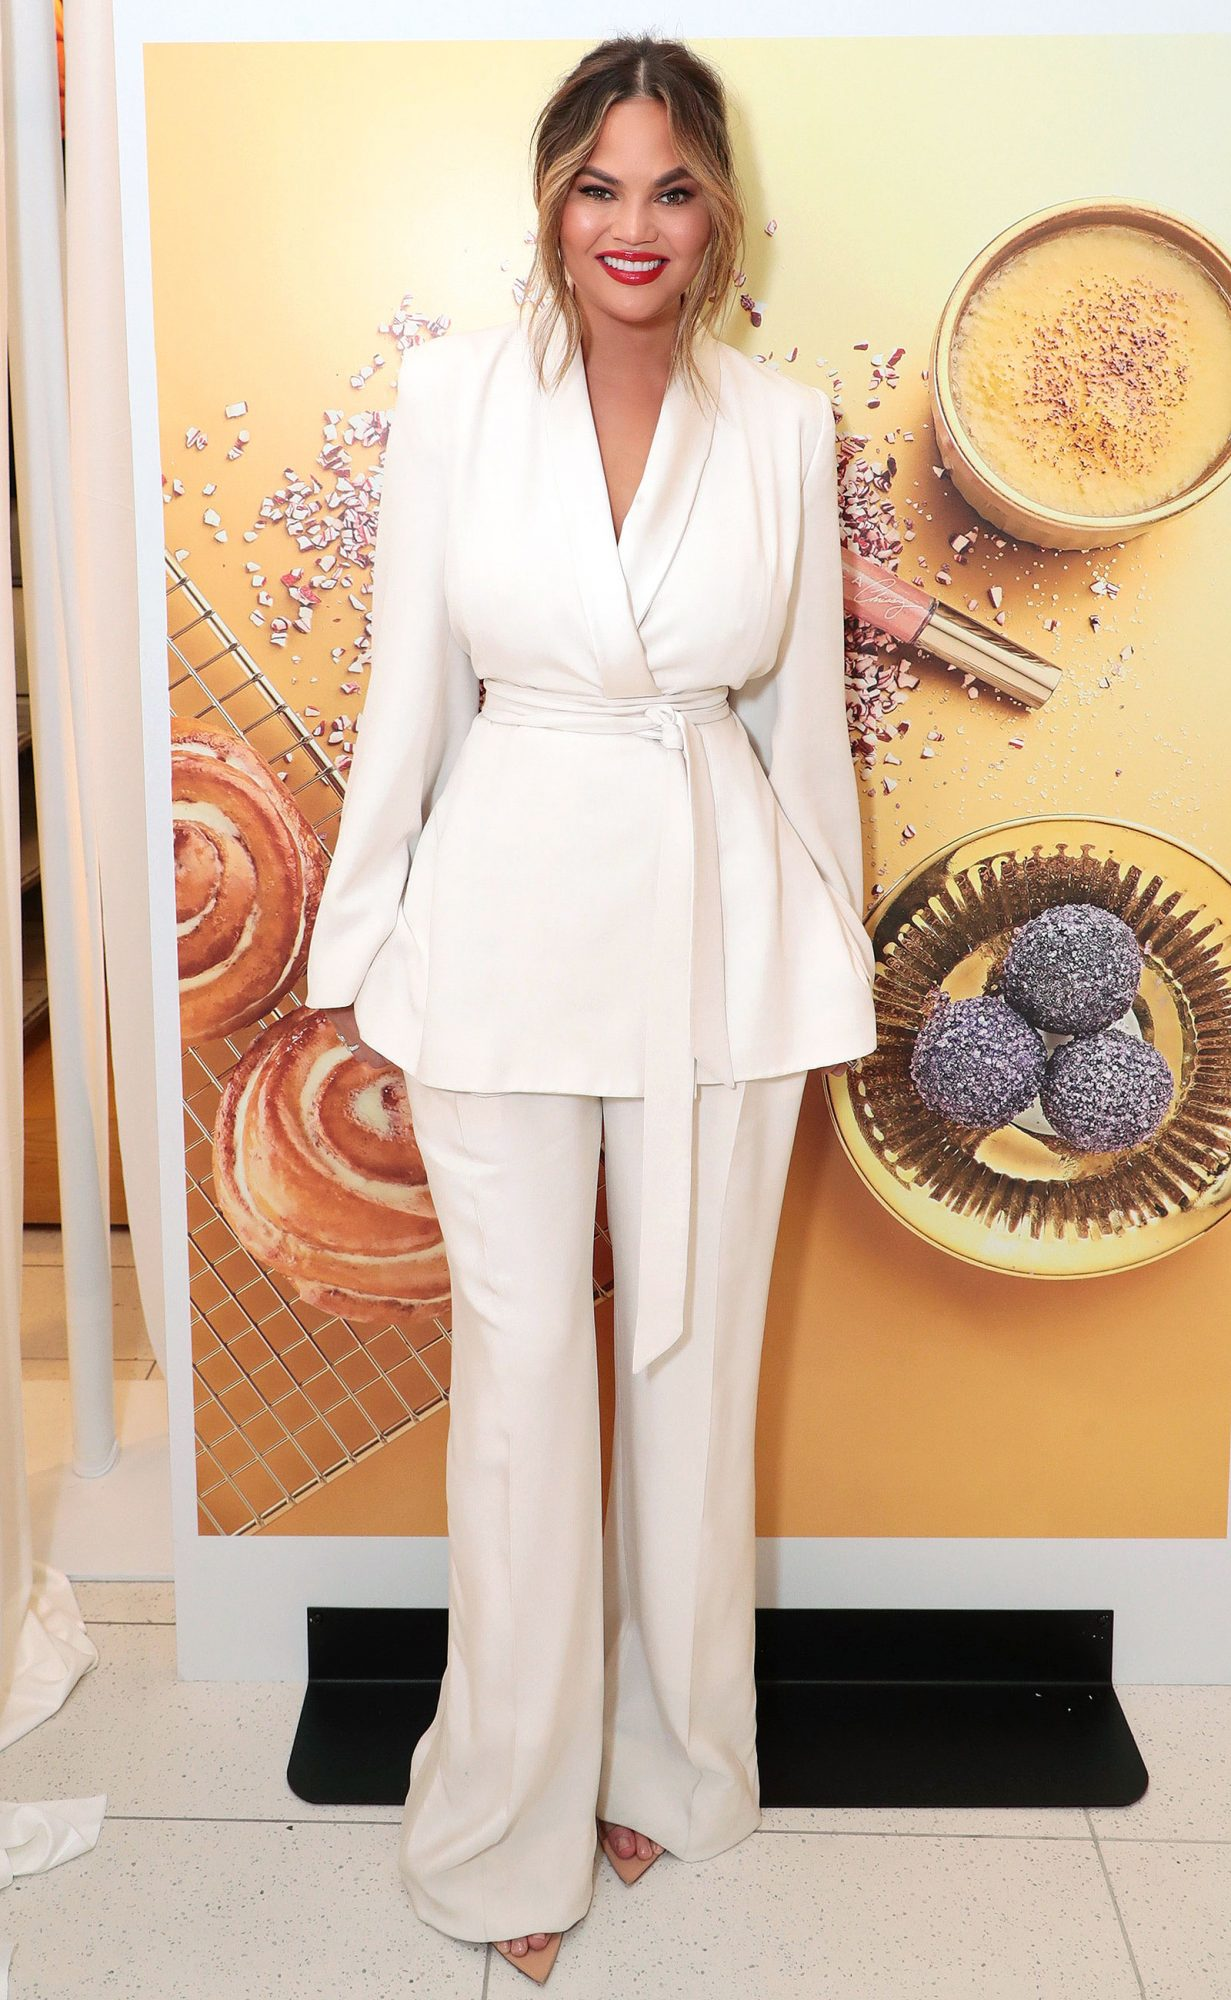 Chrissy Teigen Celebrates The Launch of Her BECCA X Chrissy Cravings Collection at Nordstrom The Grove, Los Angeles, USA - 10 November 2018